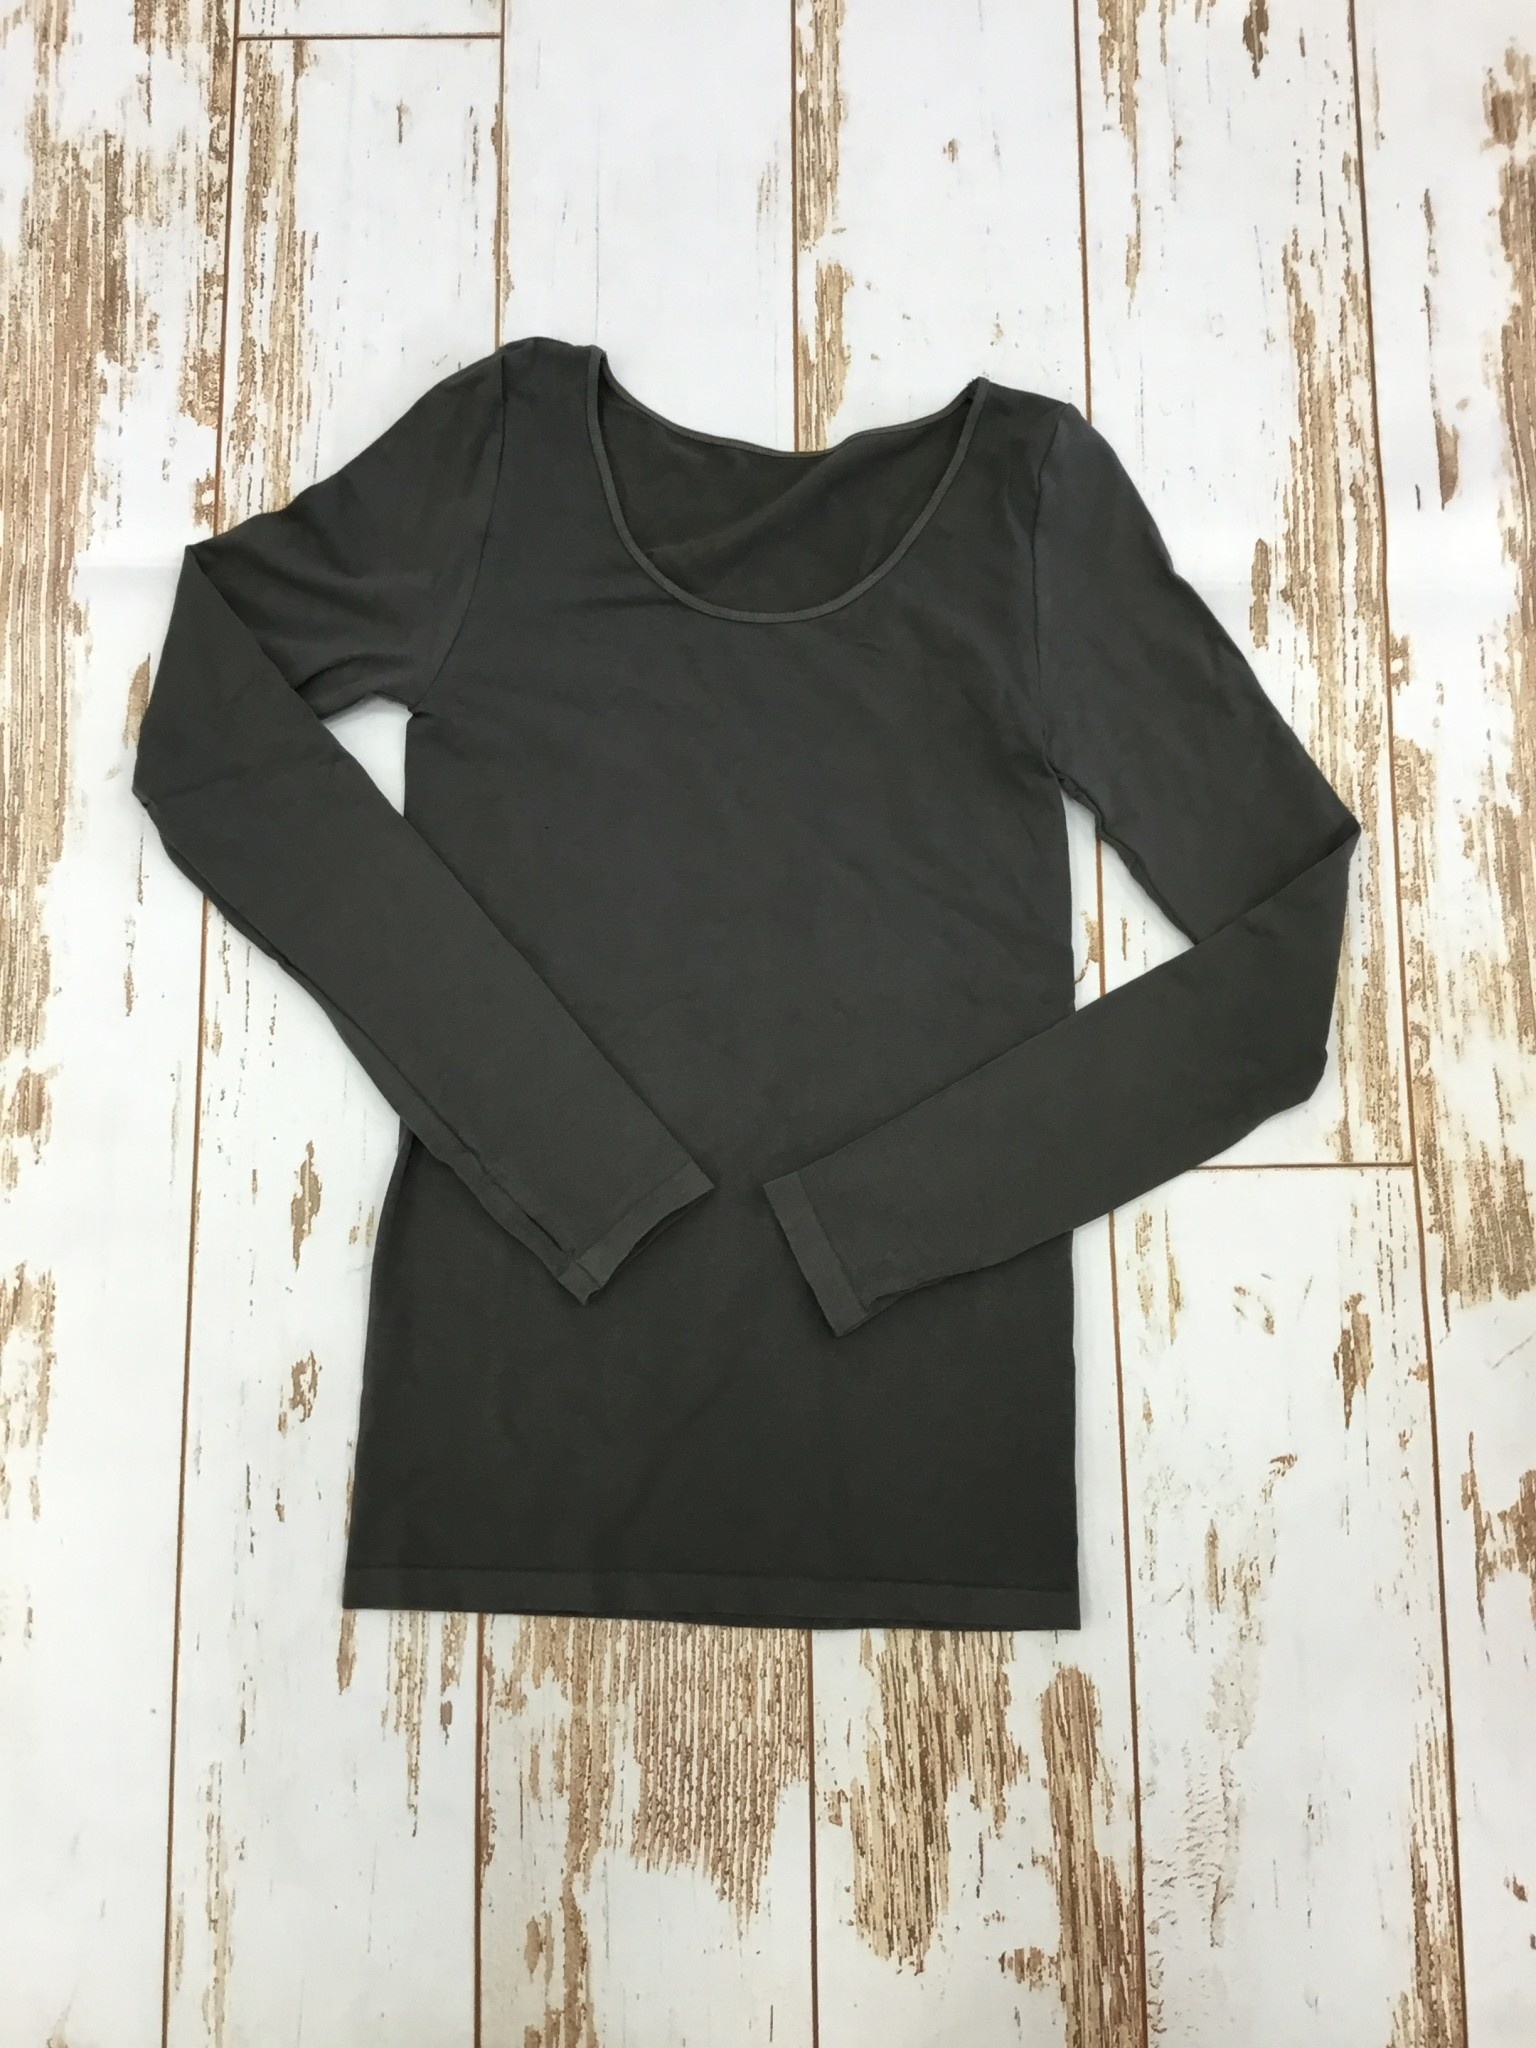 M.Rena Long Sleeve Top w/ Thumbhole in Dark Grey